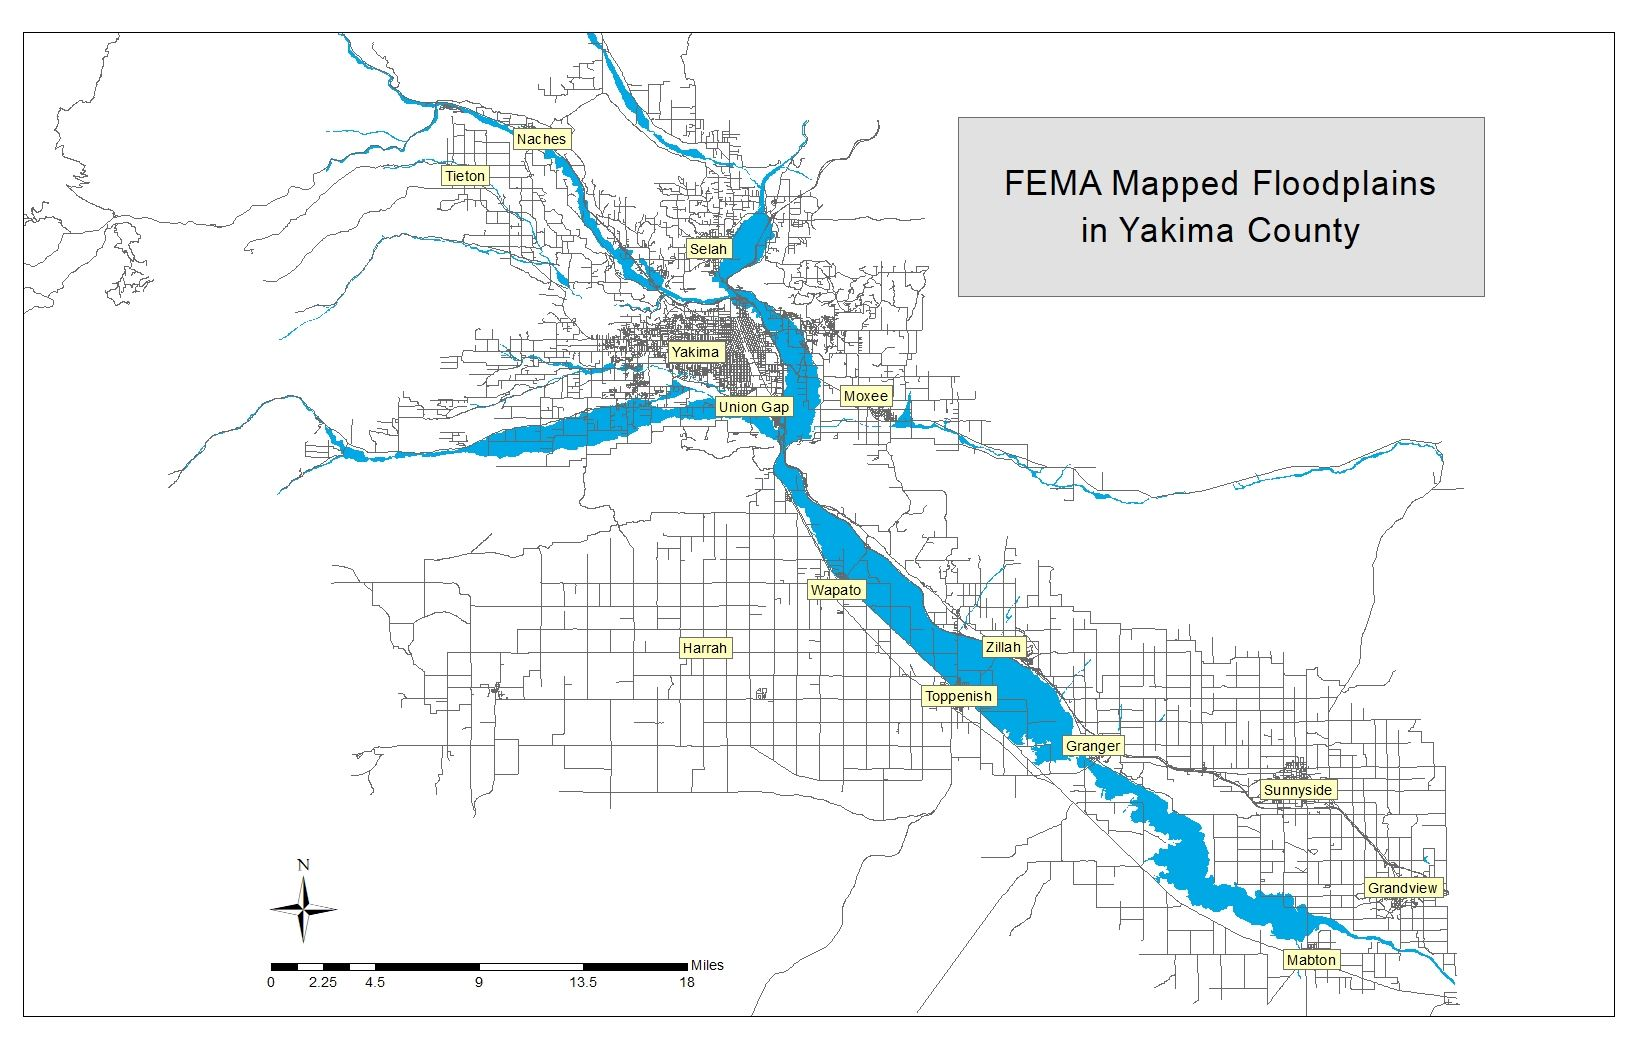 FEMA Mapped Floodplains in Yakima County.emf